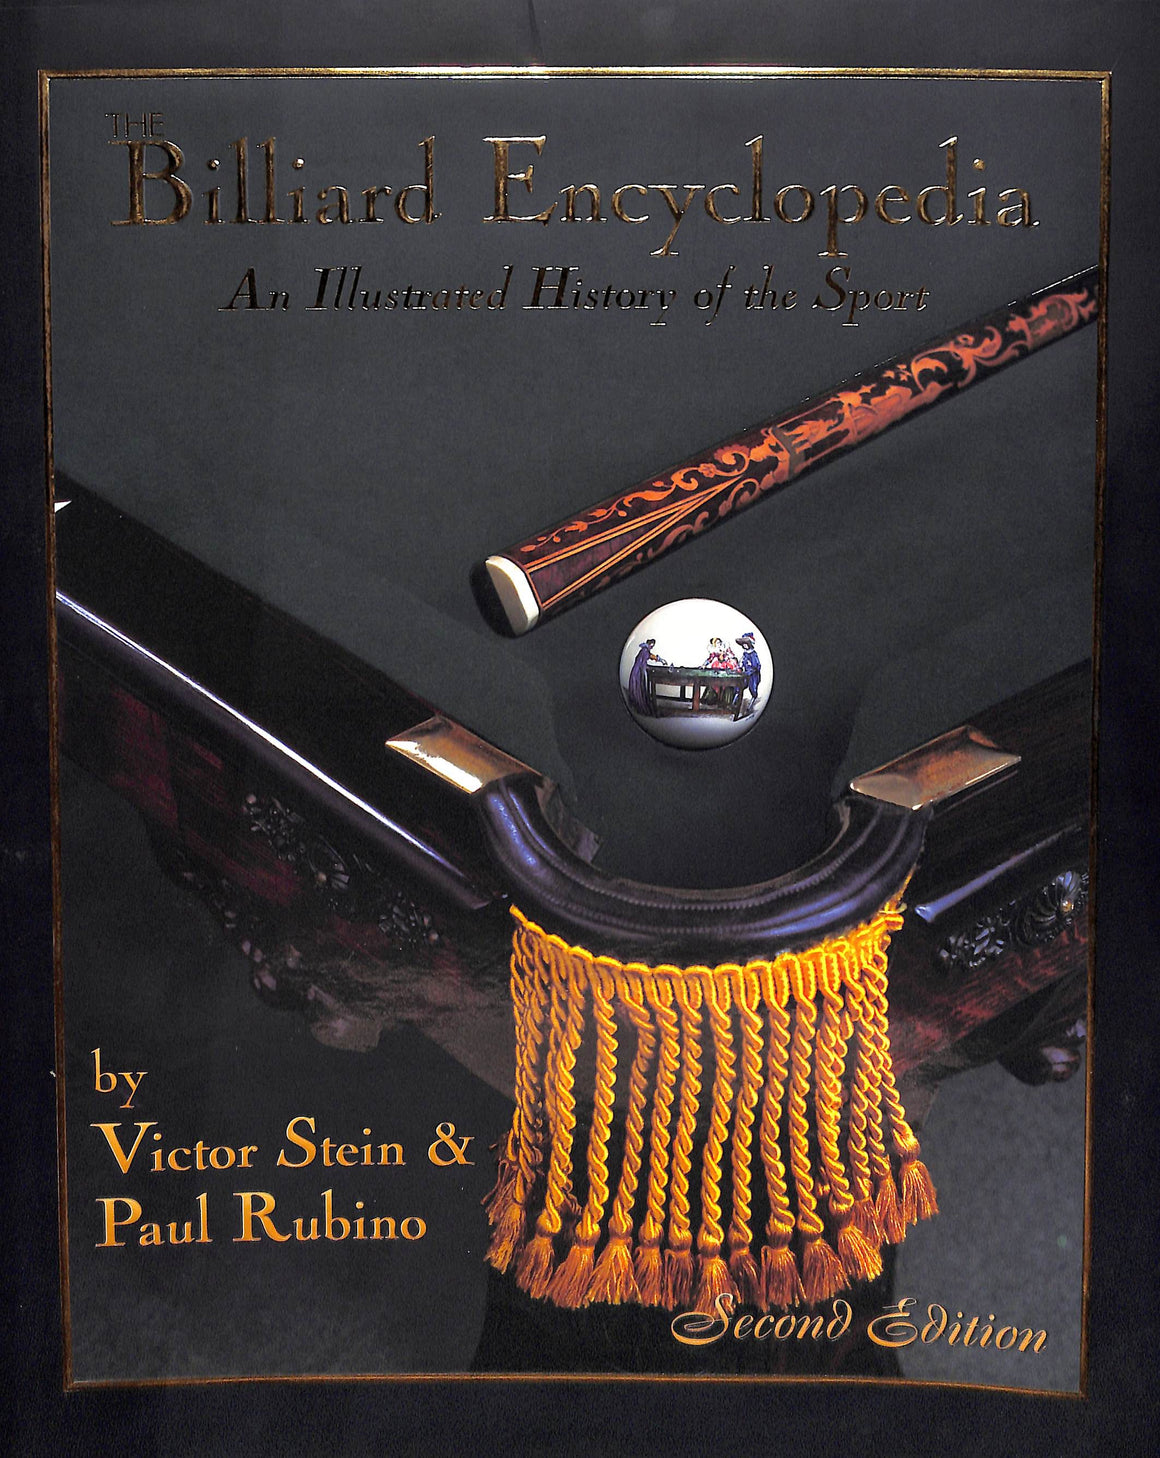 """The Billiard Encyclopedia: An Illustrated History of the Sport"" 1996 STEIN, Victor & RUBINO, Paul"